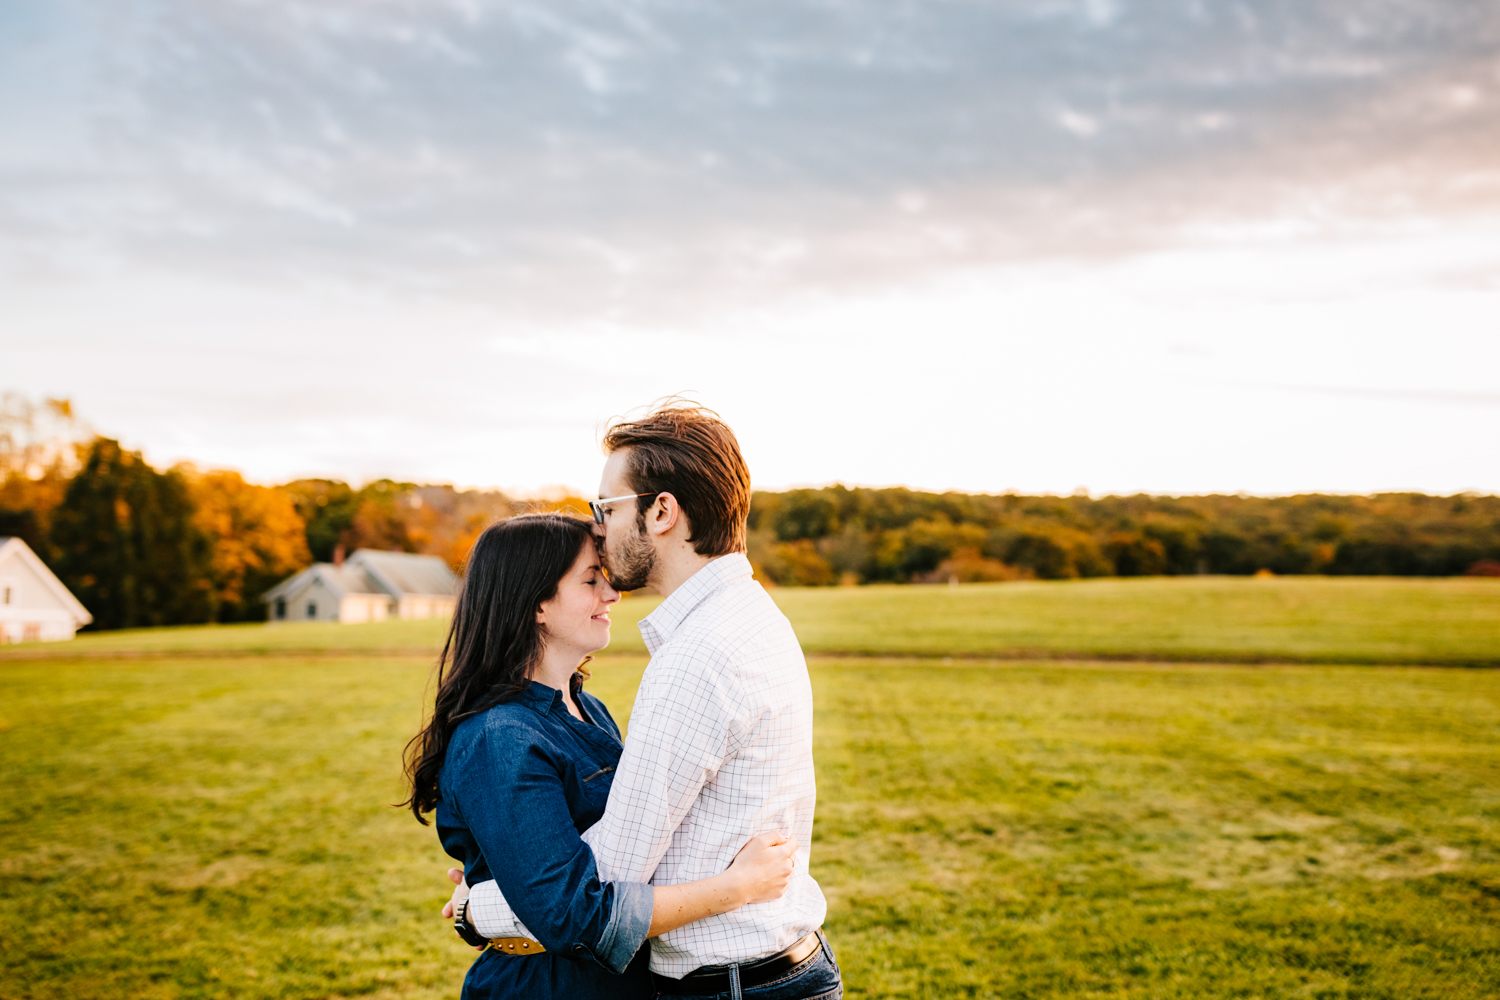 2. chase-farm-lincoln-ri-albuquerque-wedding-photographer-fun-adventurous-andrea-van-orsouw-photography-natural-boston-phoenix-2.jpg